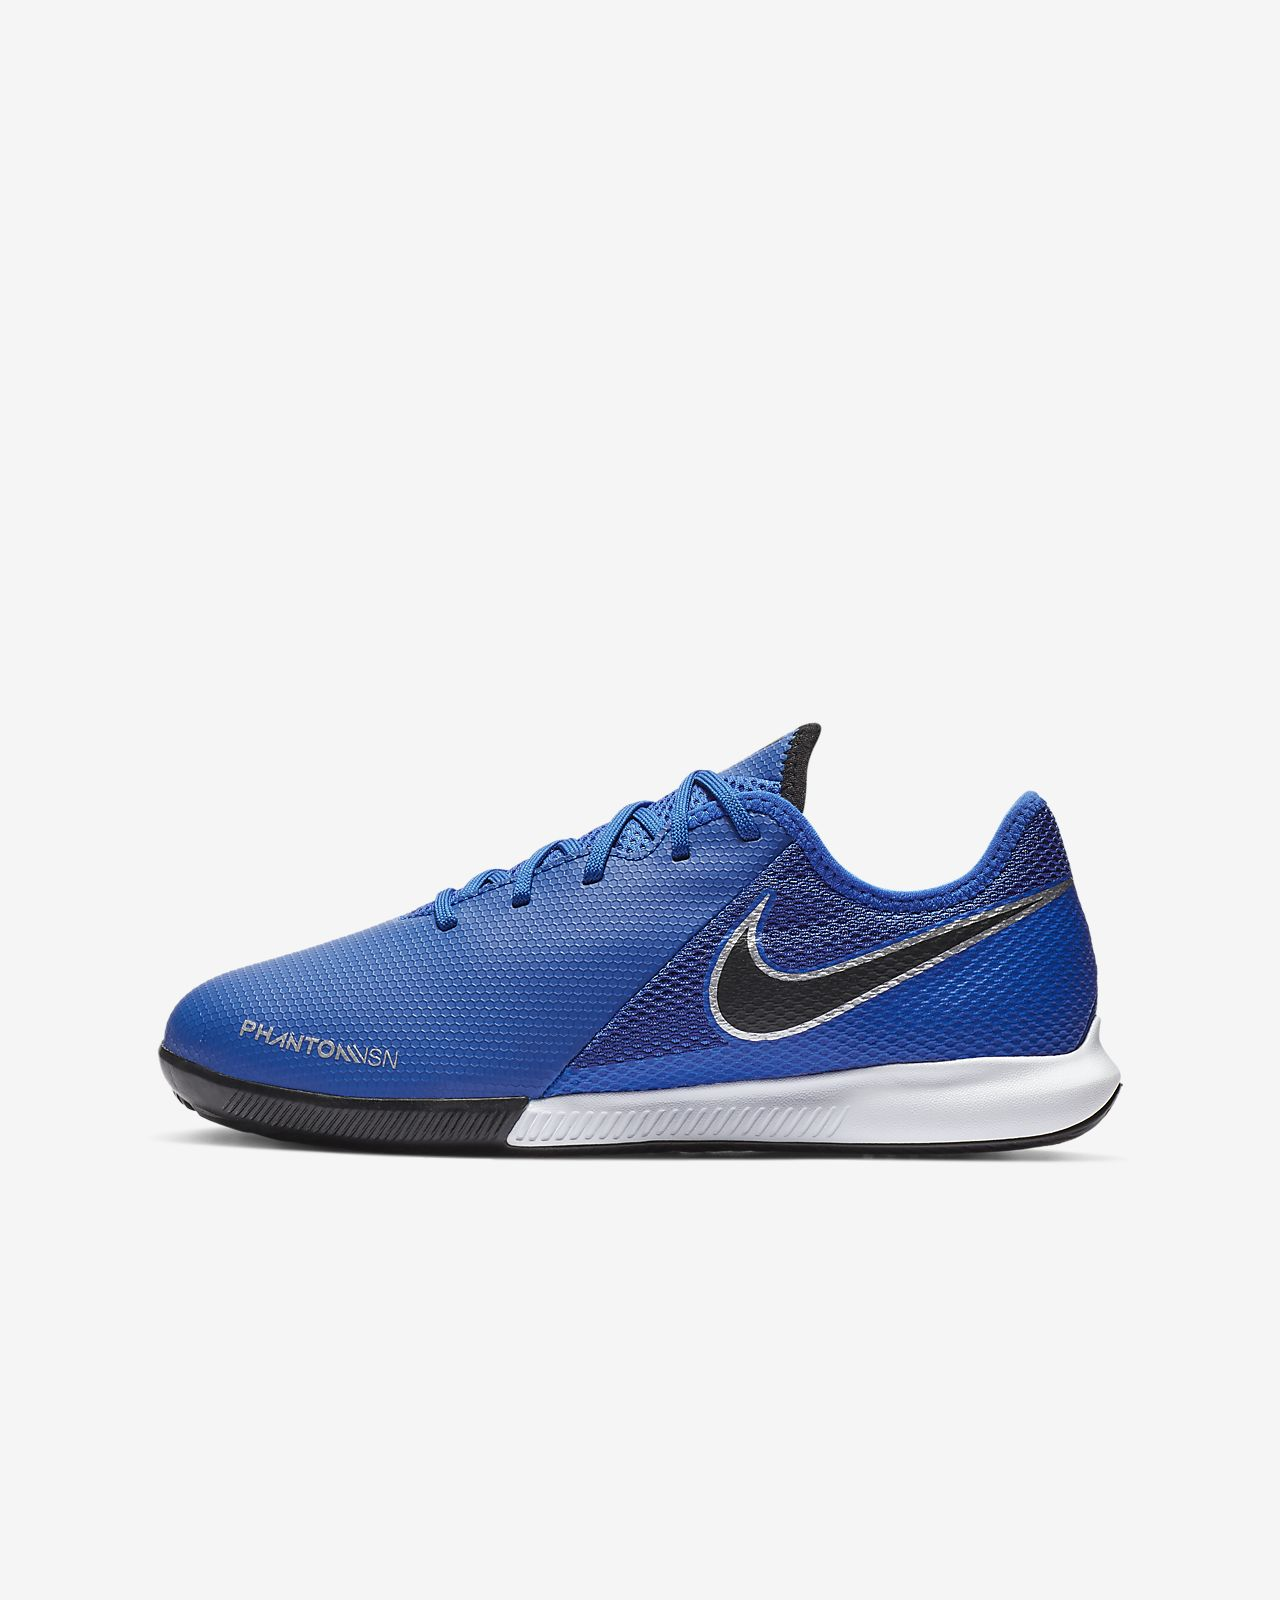 super popular 696bd 65839 jr-phantomvsn-academy-ic-younger-older-indoor-court-football-shoe-Vj7l2N.jpg